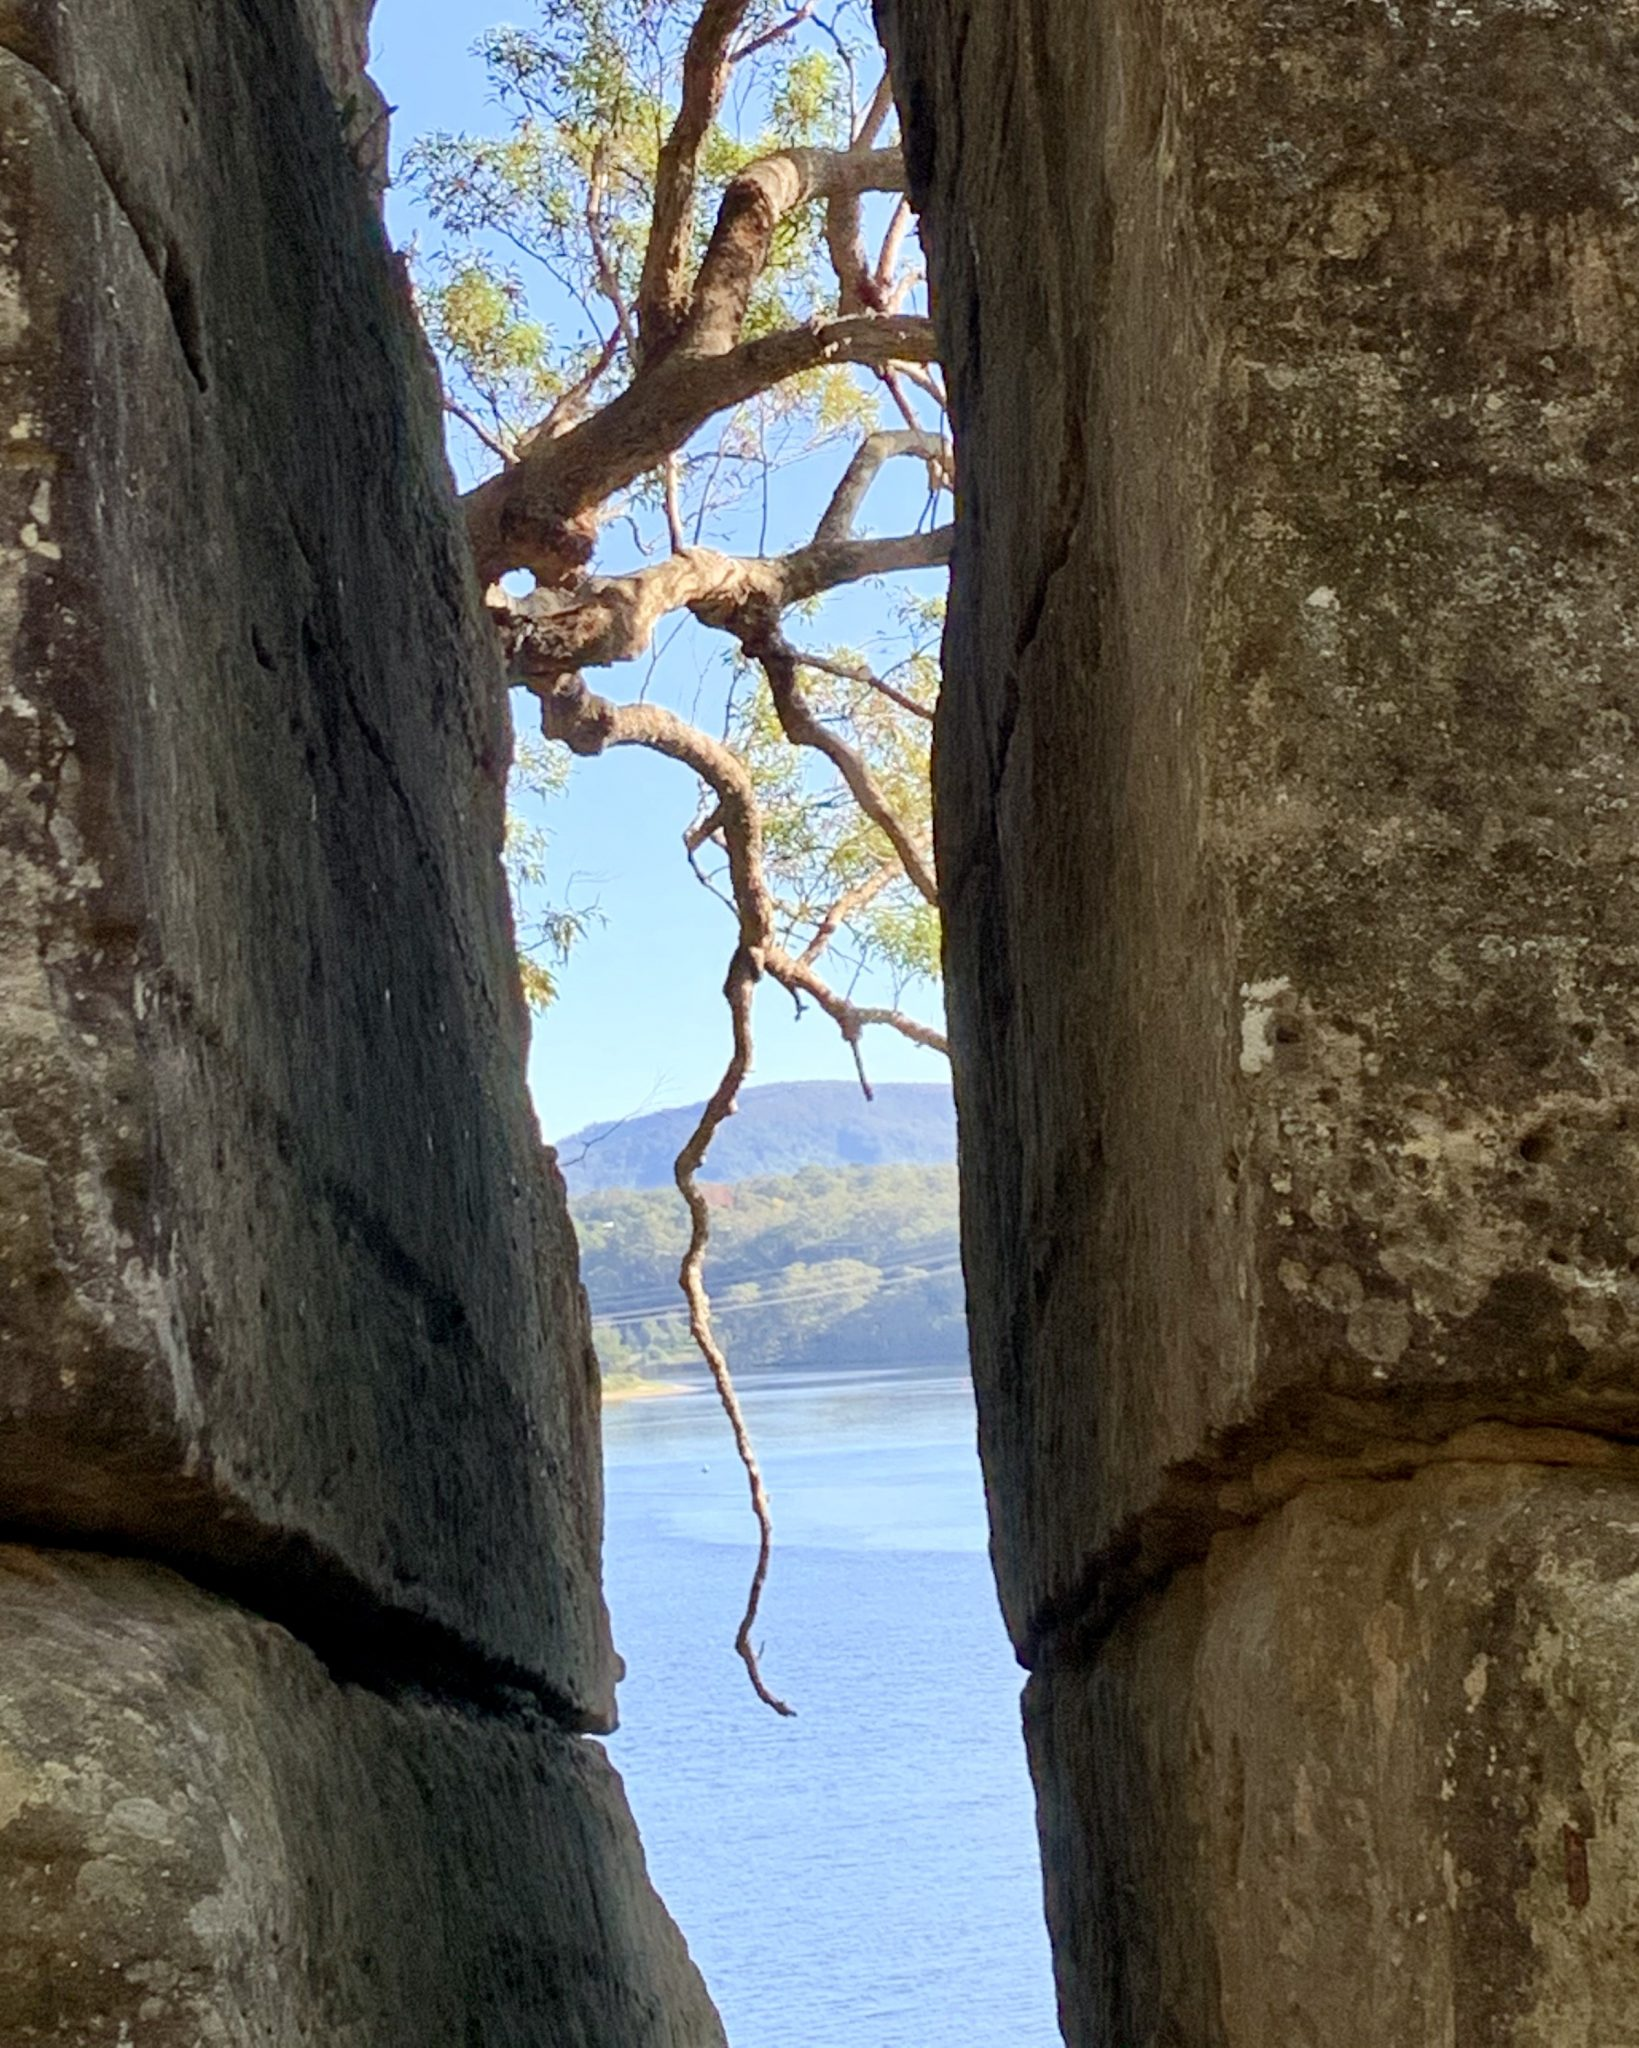 Between the rocks - at Ben's Walk near Hanging Rock